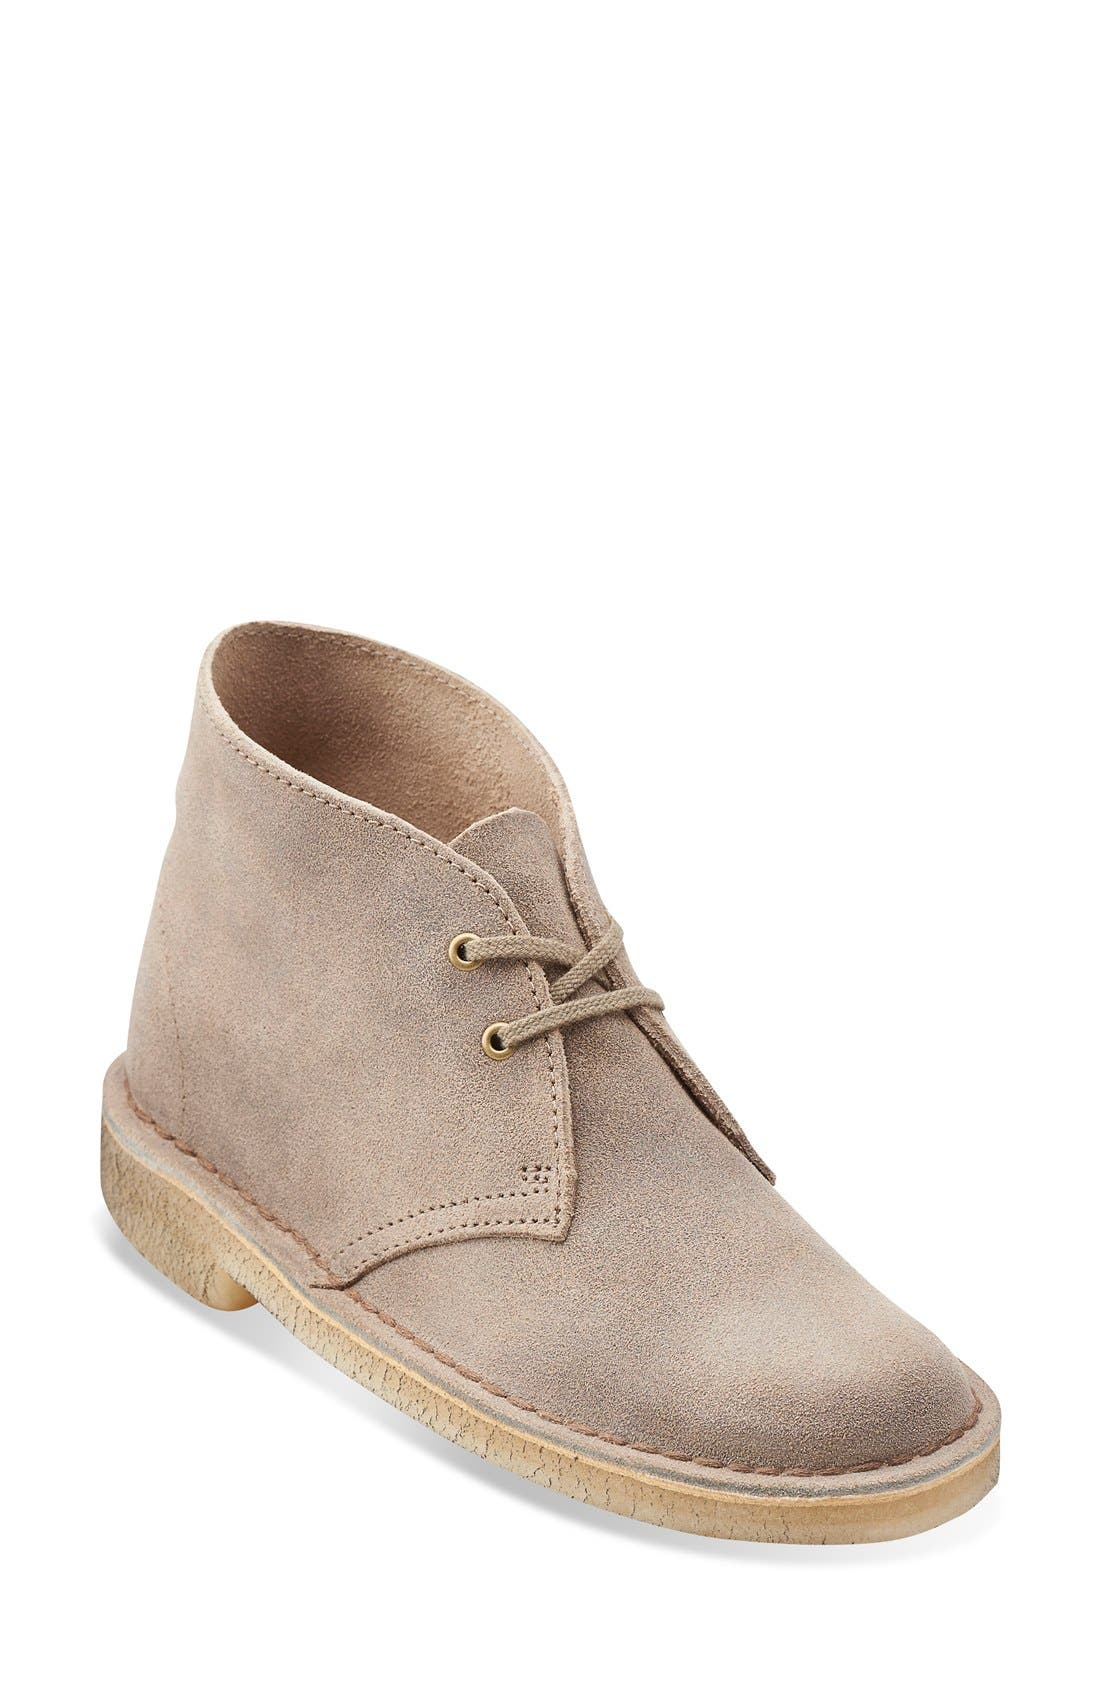 Find great deals on eBay for desert boots. Shop with confidence.